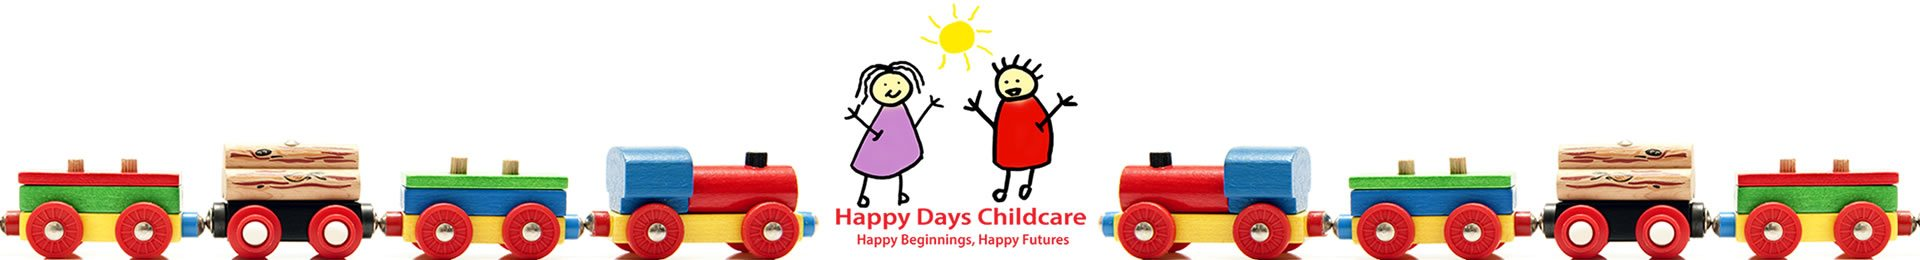 Happy Days Childcare Nursery contact us